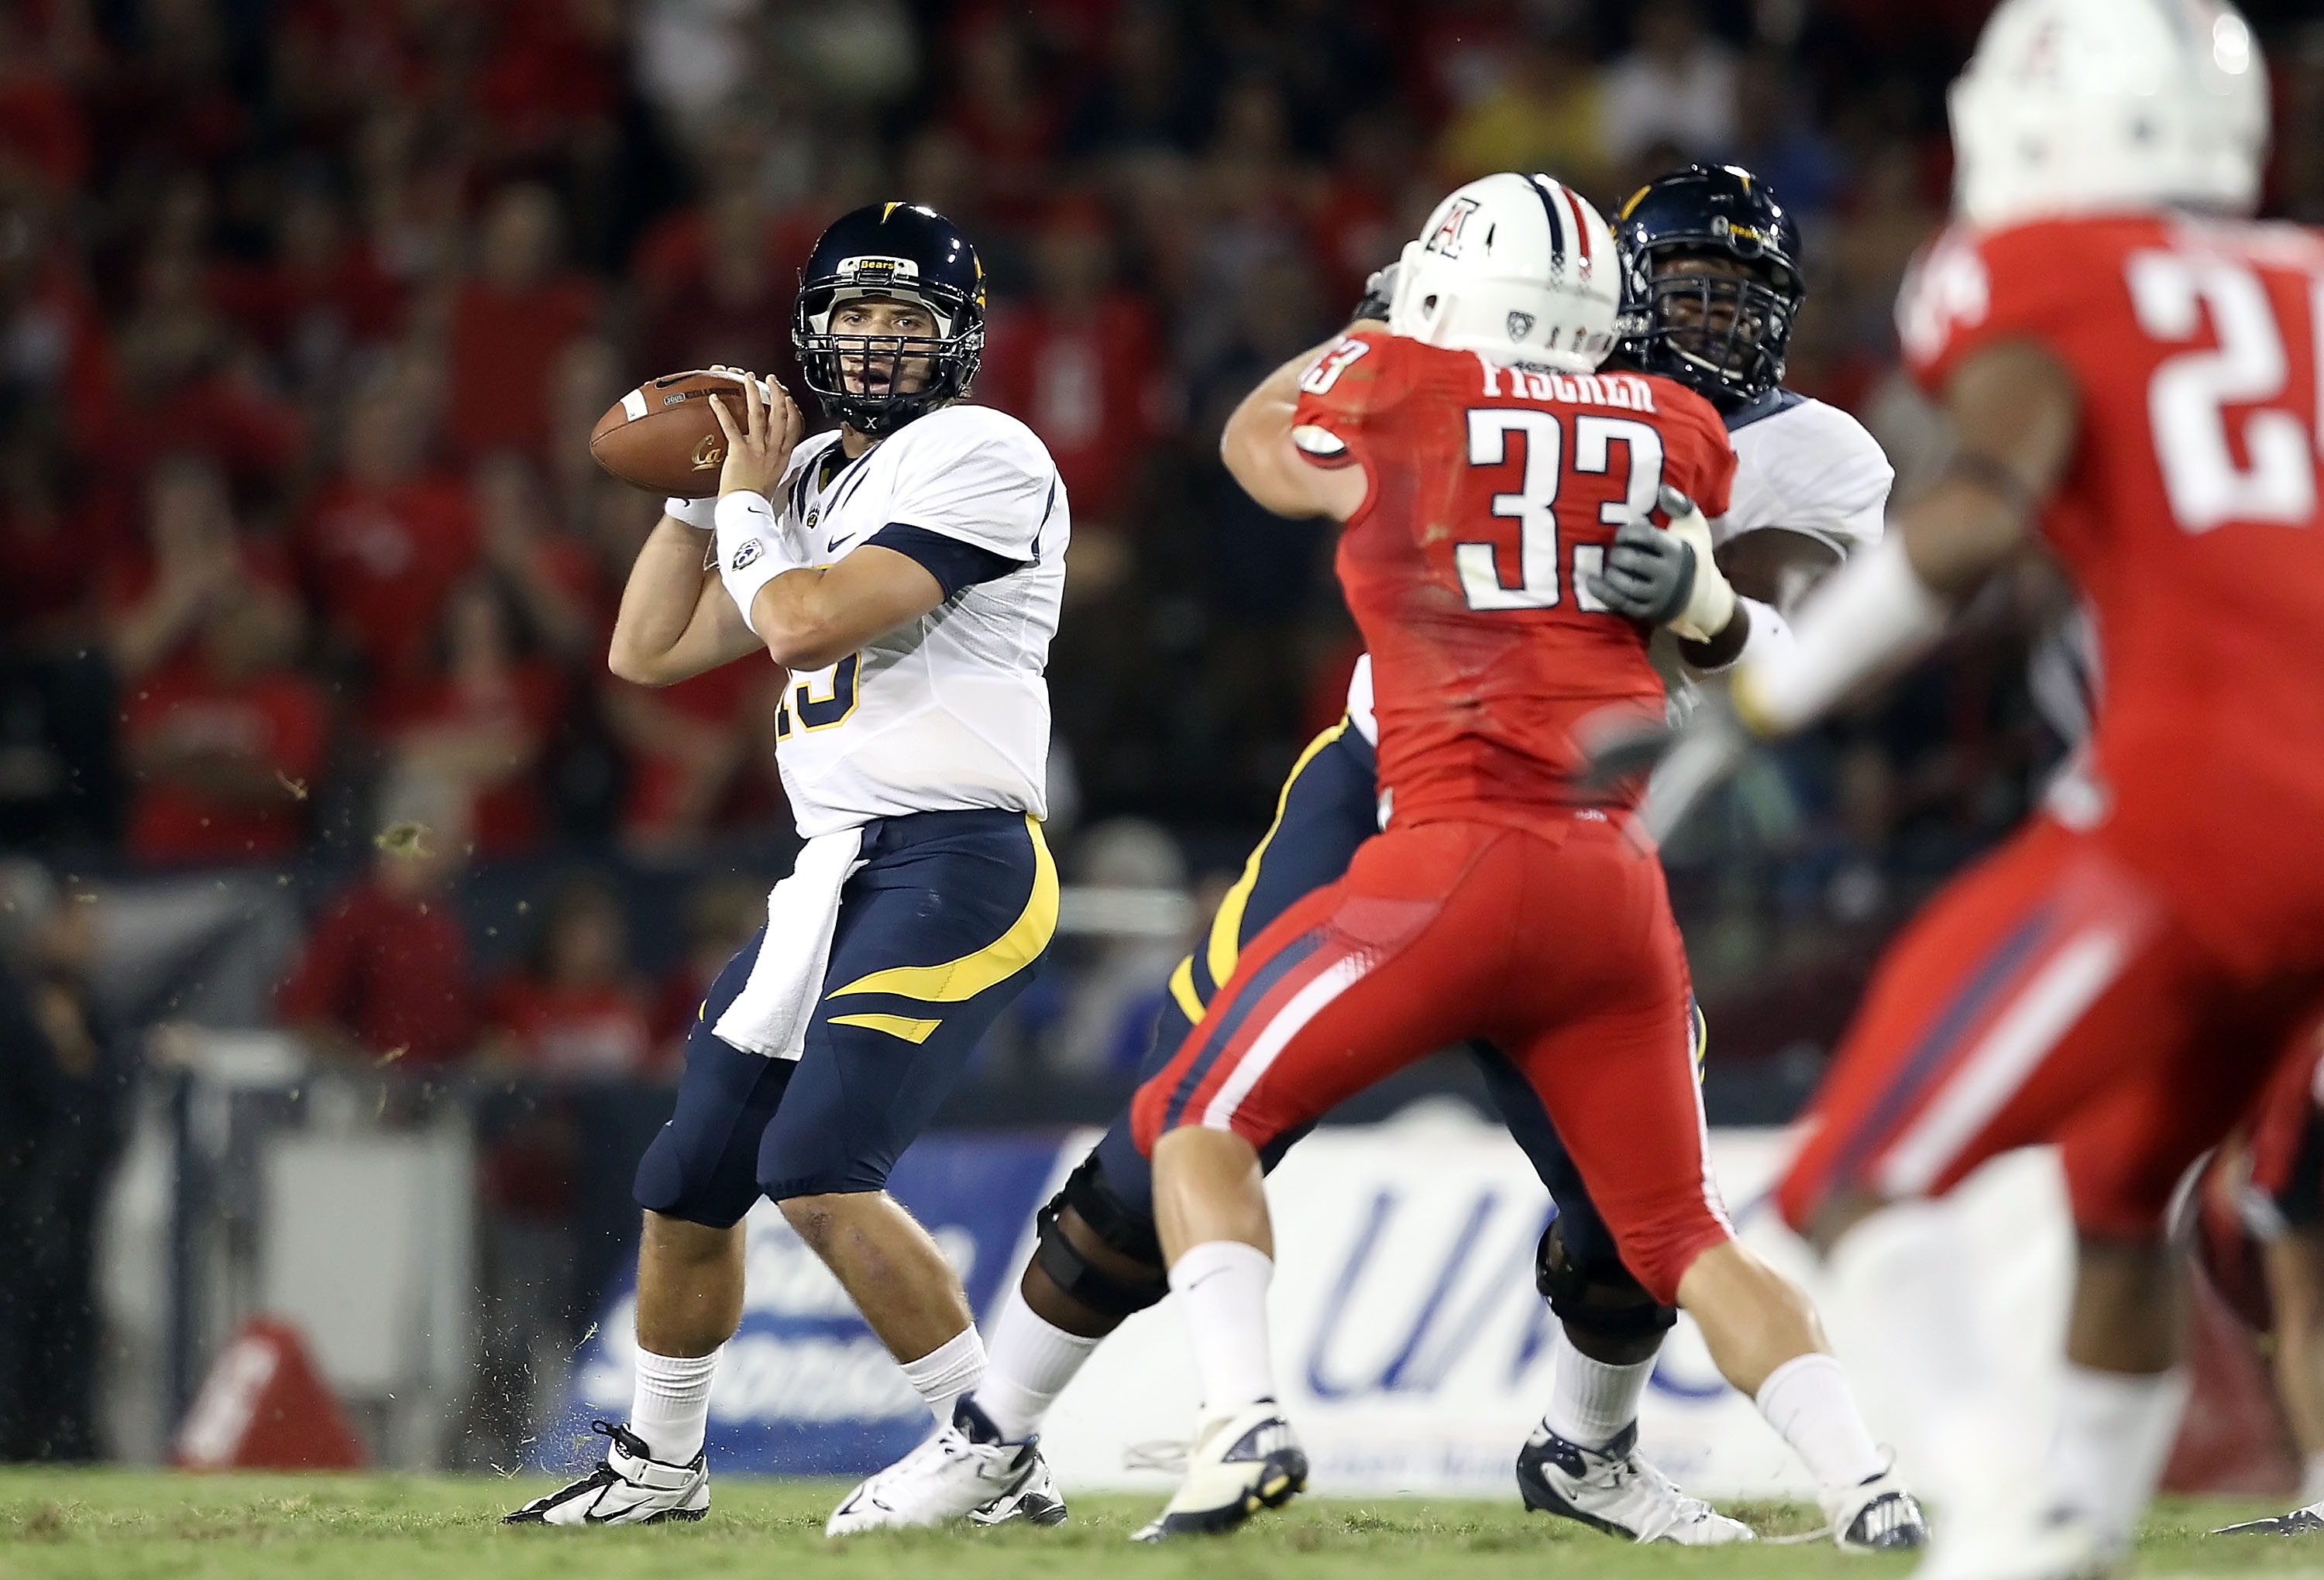 TUCSON, AZ - SEPTEMBER 25:  Quarterback Kevin Riley #13 of the California Bears drops back to pass during the college football game against the Arizona Wildcats at Arizona Stadium on September 25, 2010 in Tucson, Arizona.  (Photo by Christian Petersen/Get